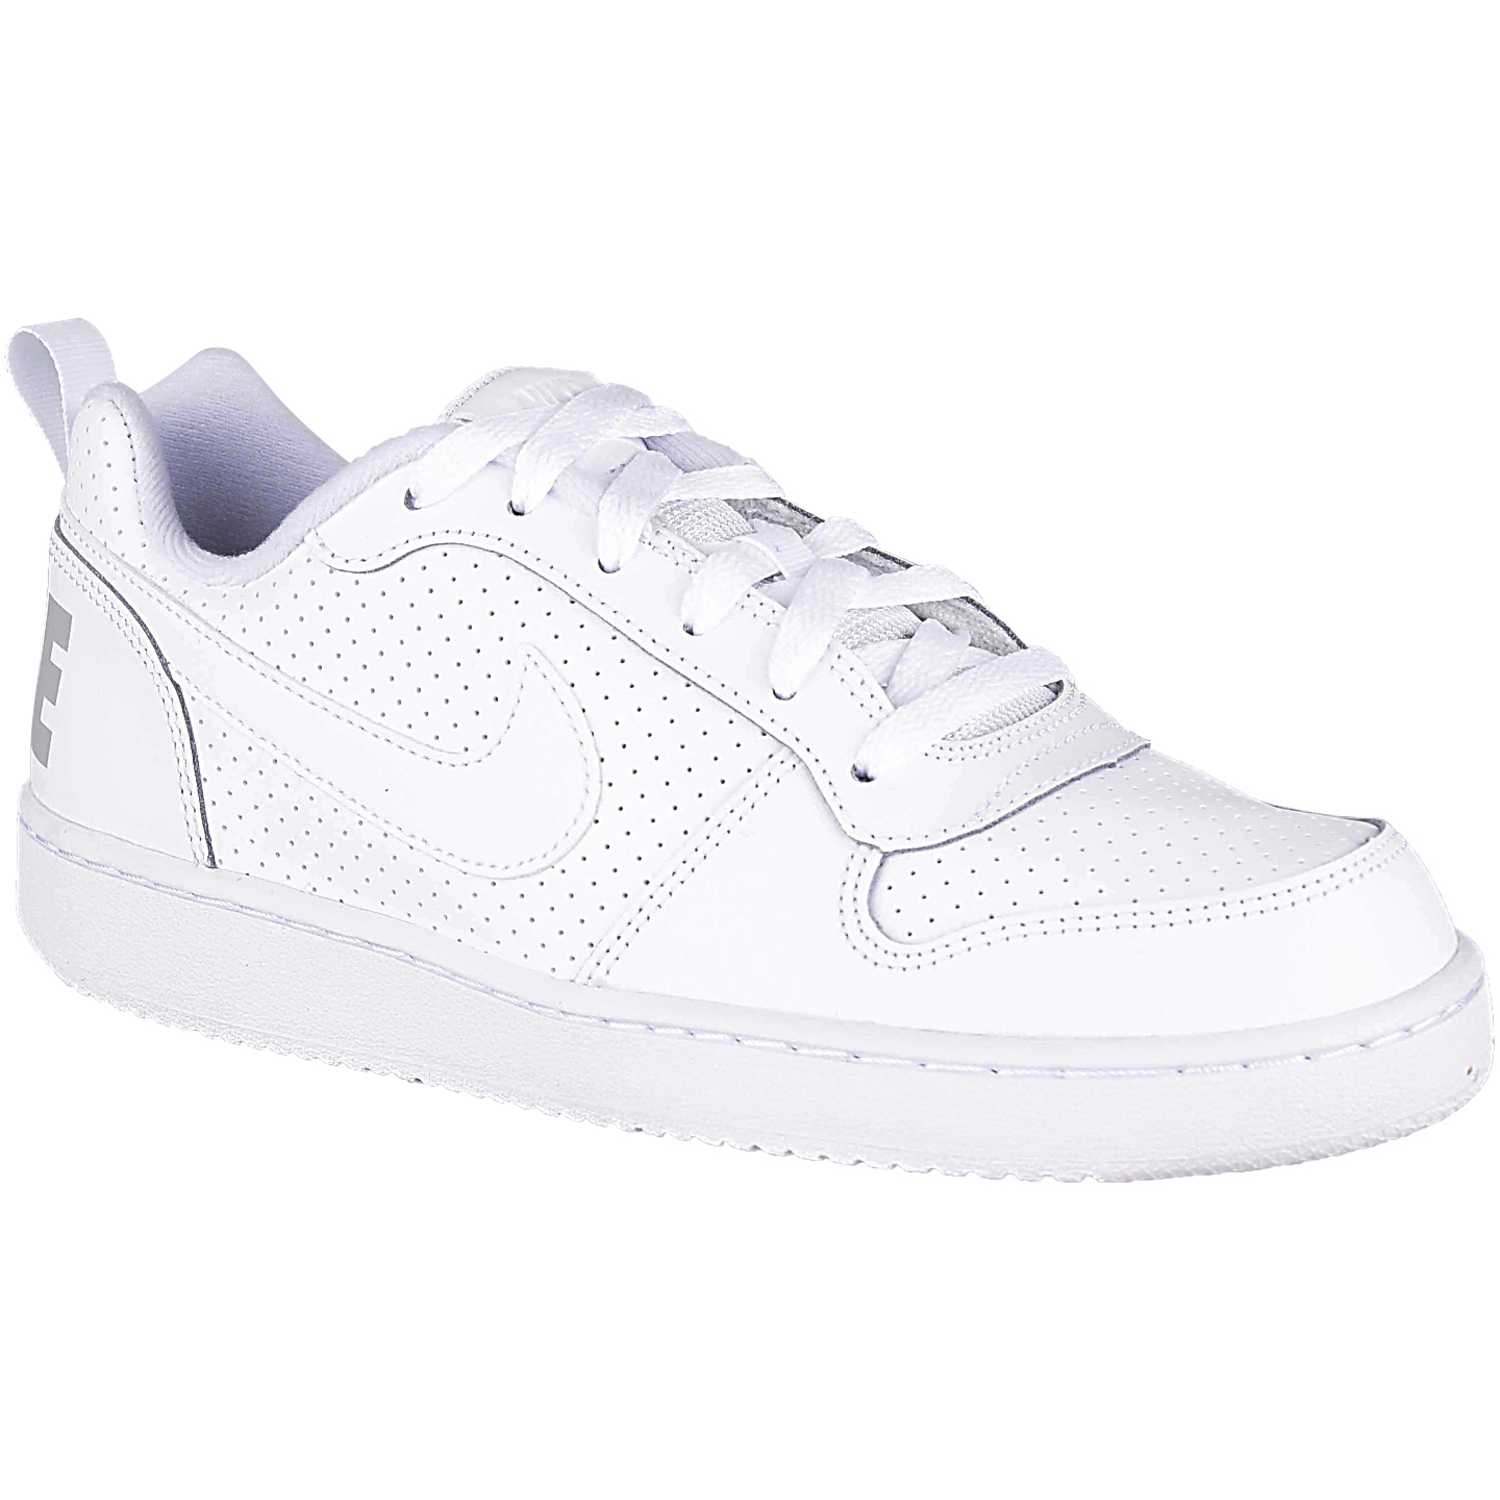 De Jovencita Nike Borough Bg Low Blbl Zapatilla Court qaSfa